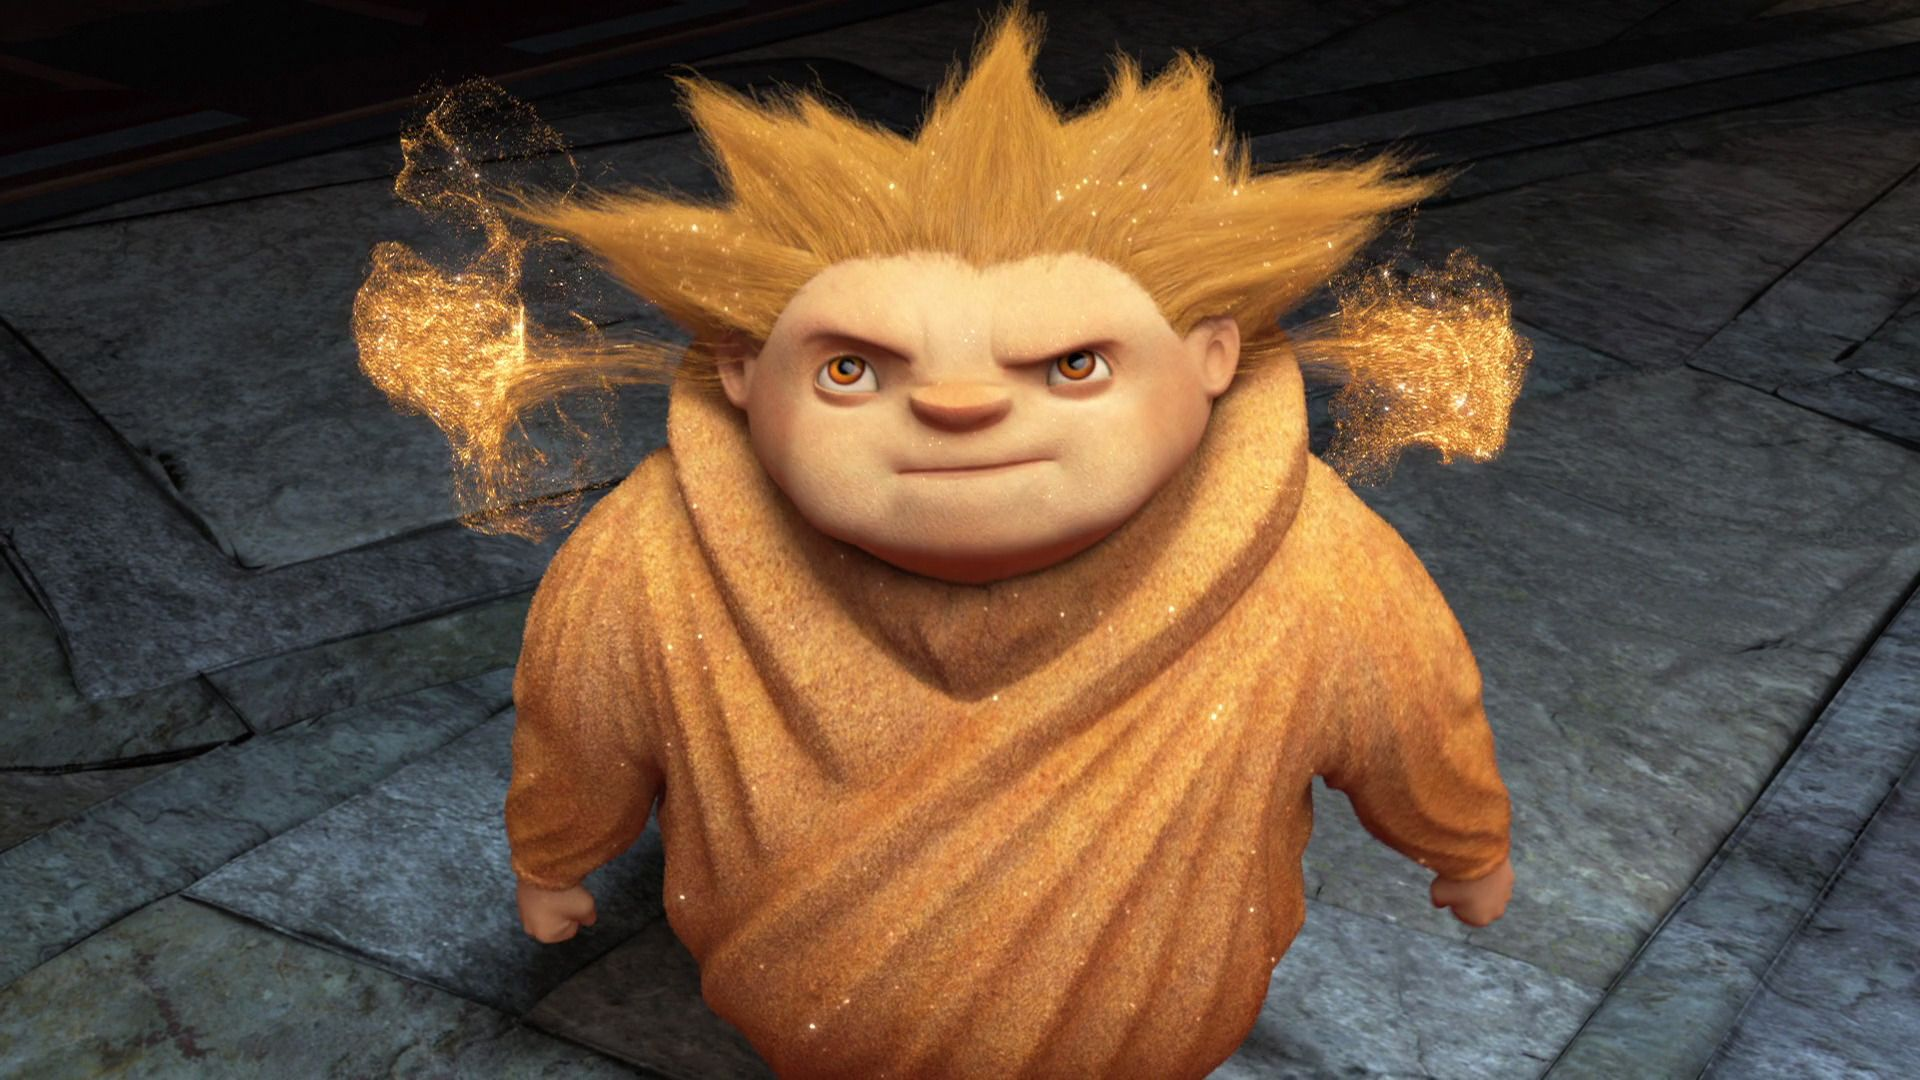 Sandman rise of the guardians hd google search cg pinterest sandman rise of the guardians hd google search thecheapjerseys Images